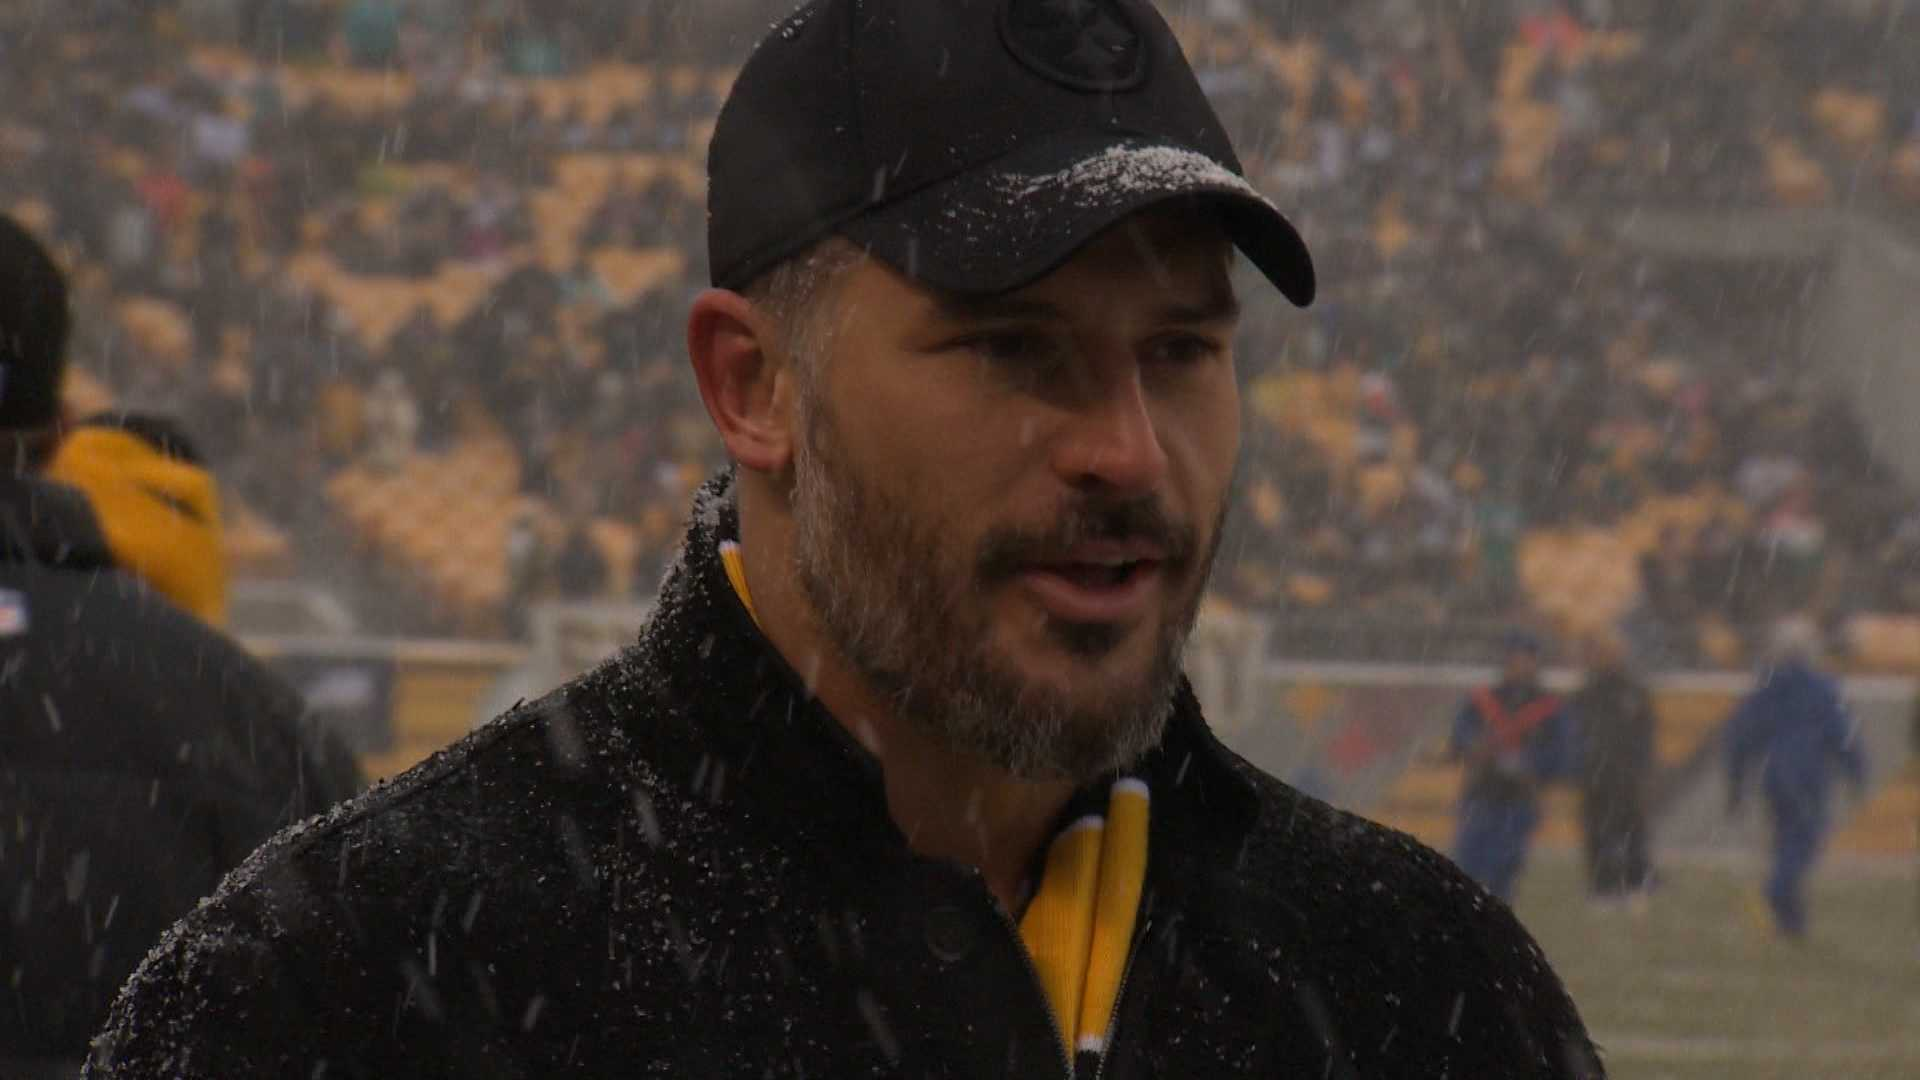 Pittsburgh native Joe Manganiello returned to his hometown on Sunday to get fans fired up during the Terrible Towel Twirl before the Steelers-Dolphins game at Heinz Field.